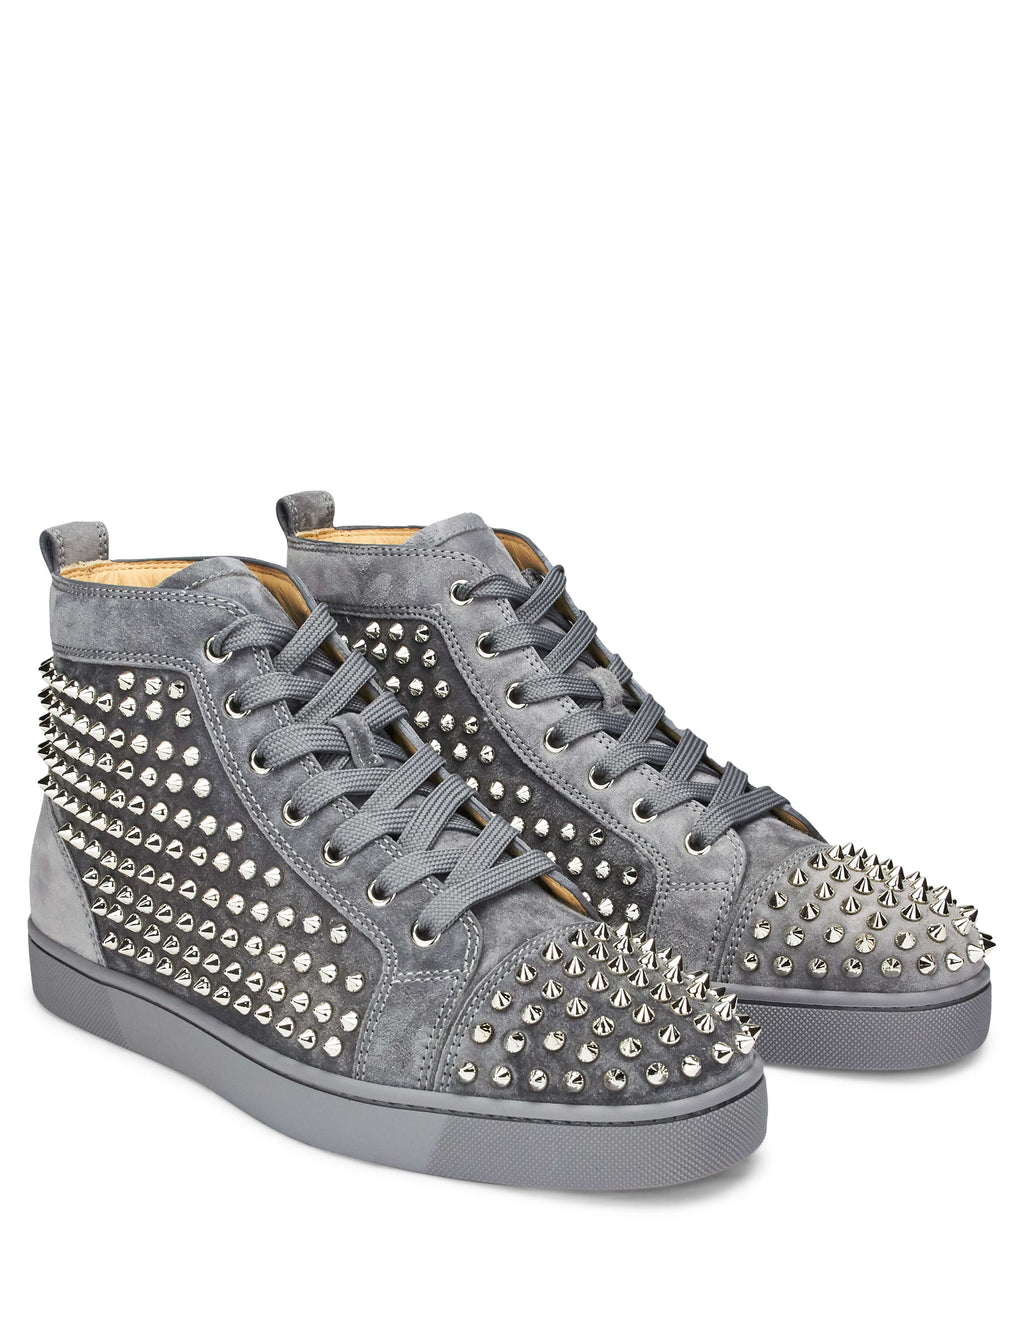 size 40 15f3e d51b6 Christian Louboutin Louis Spikes High-Top Sneakers ...